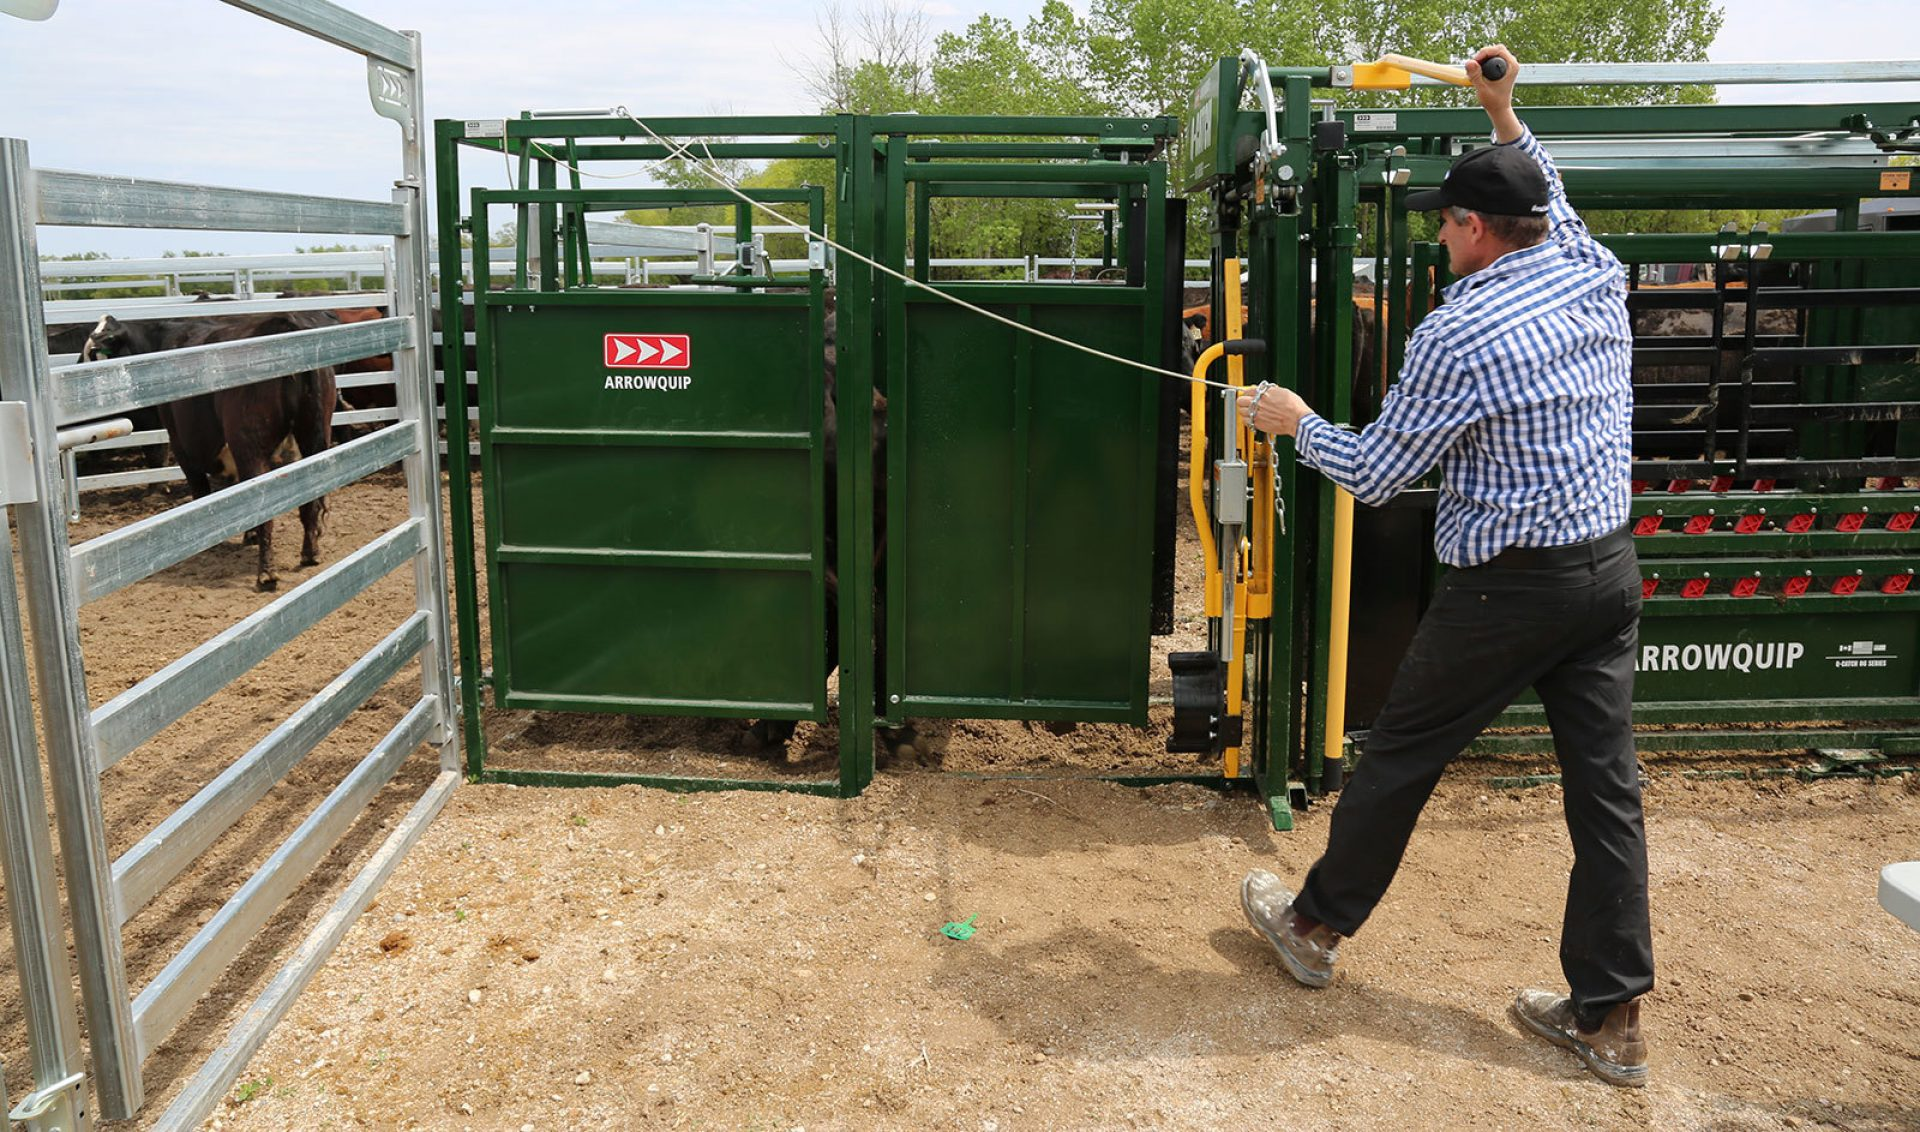 Side view of man drafting cattle with post-chute cattle sorting gate